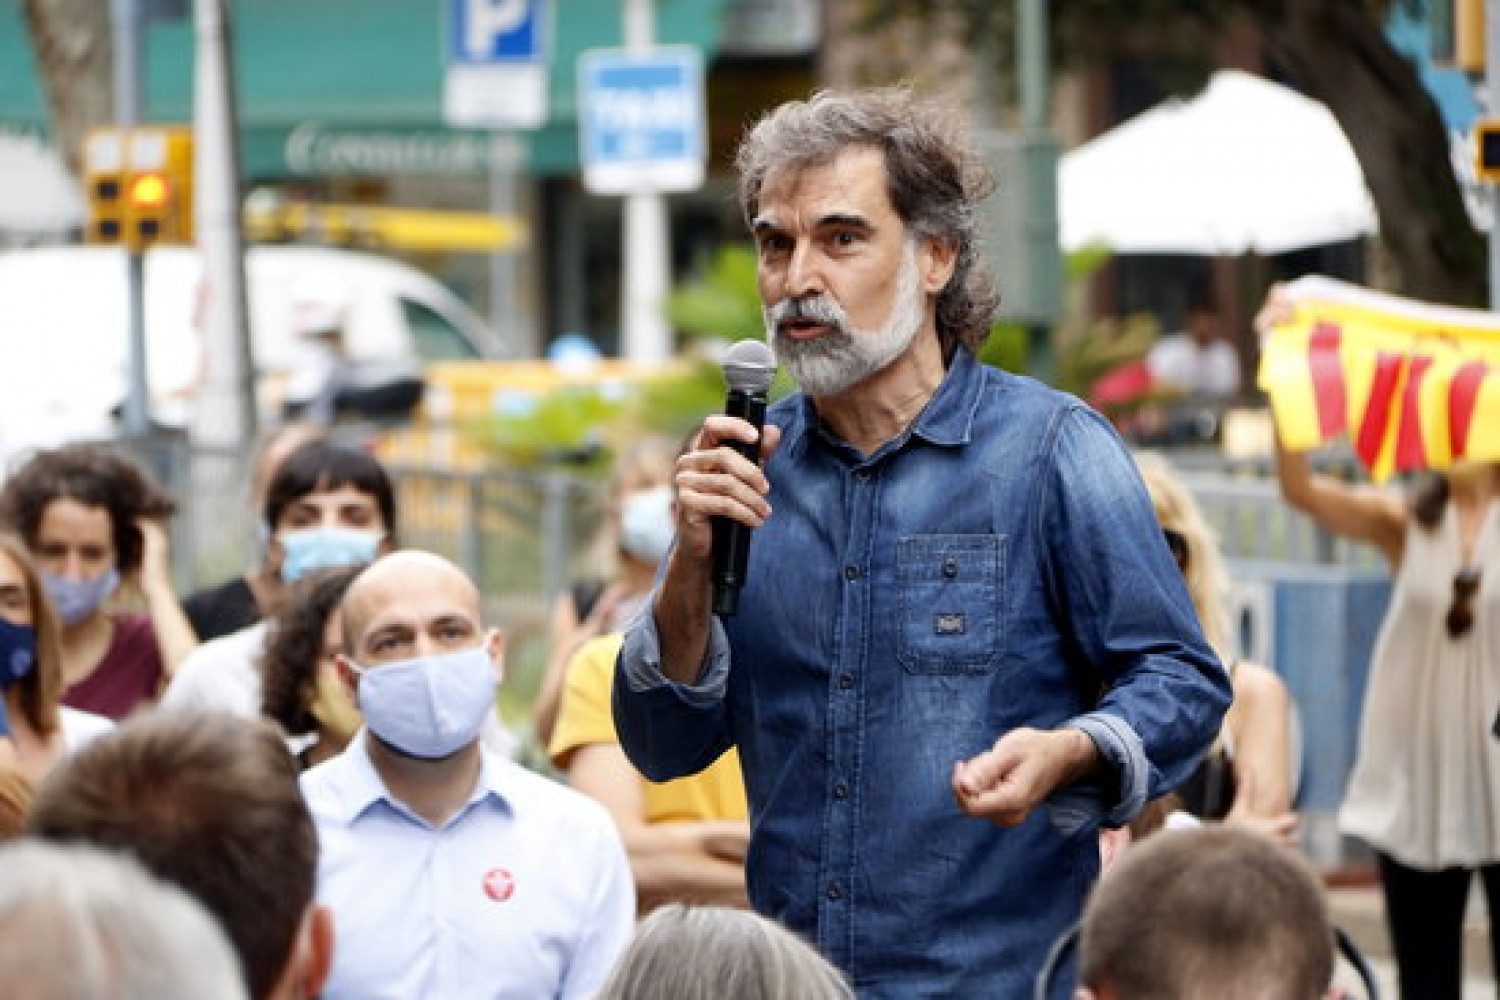 Jordi Cuixart during temporary release from prison, July 17, 2020 (by Guillem Roset)